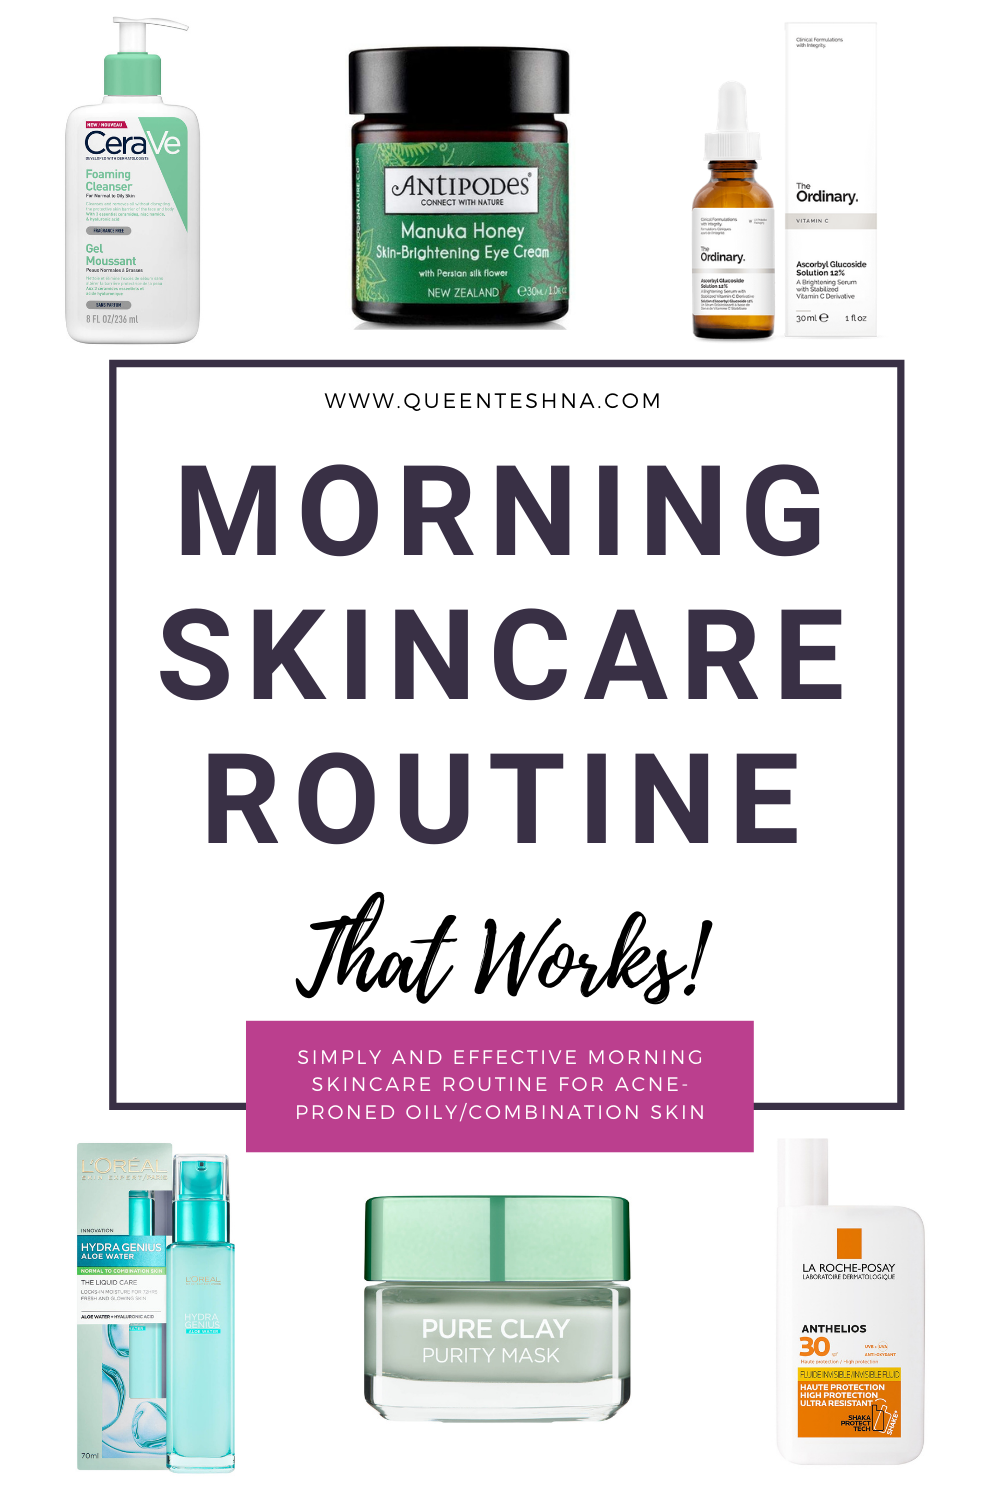 Products I use on my skin in the morning